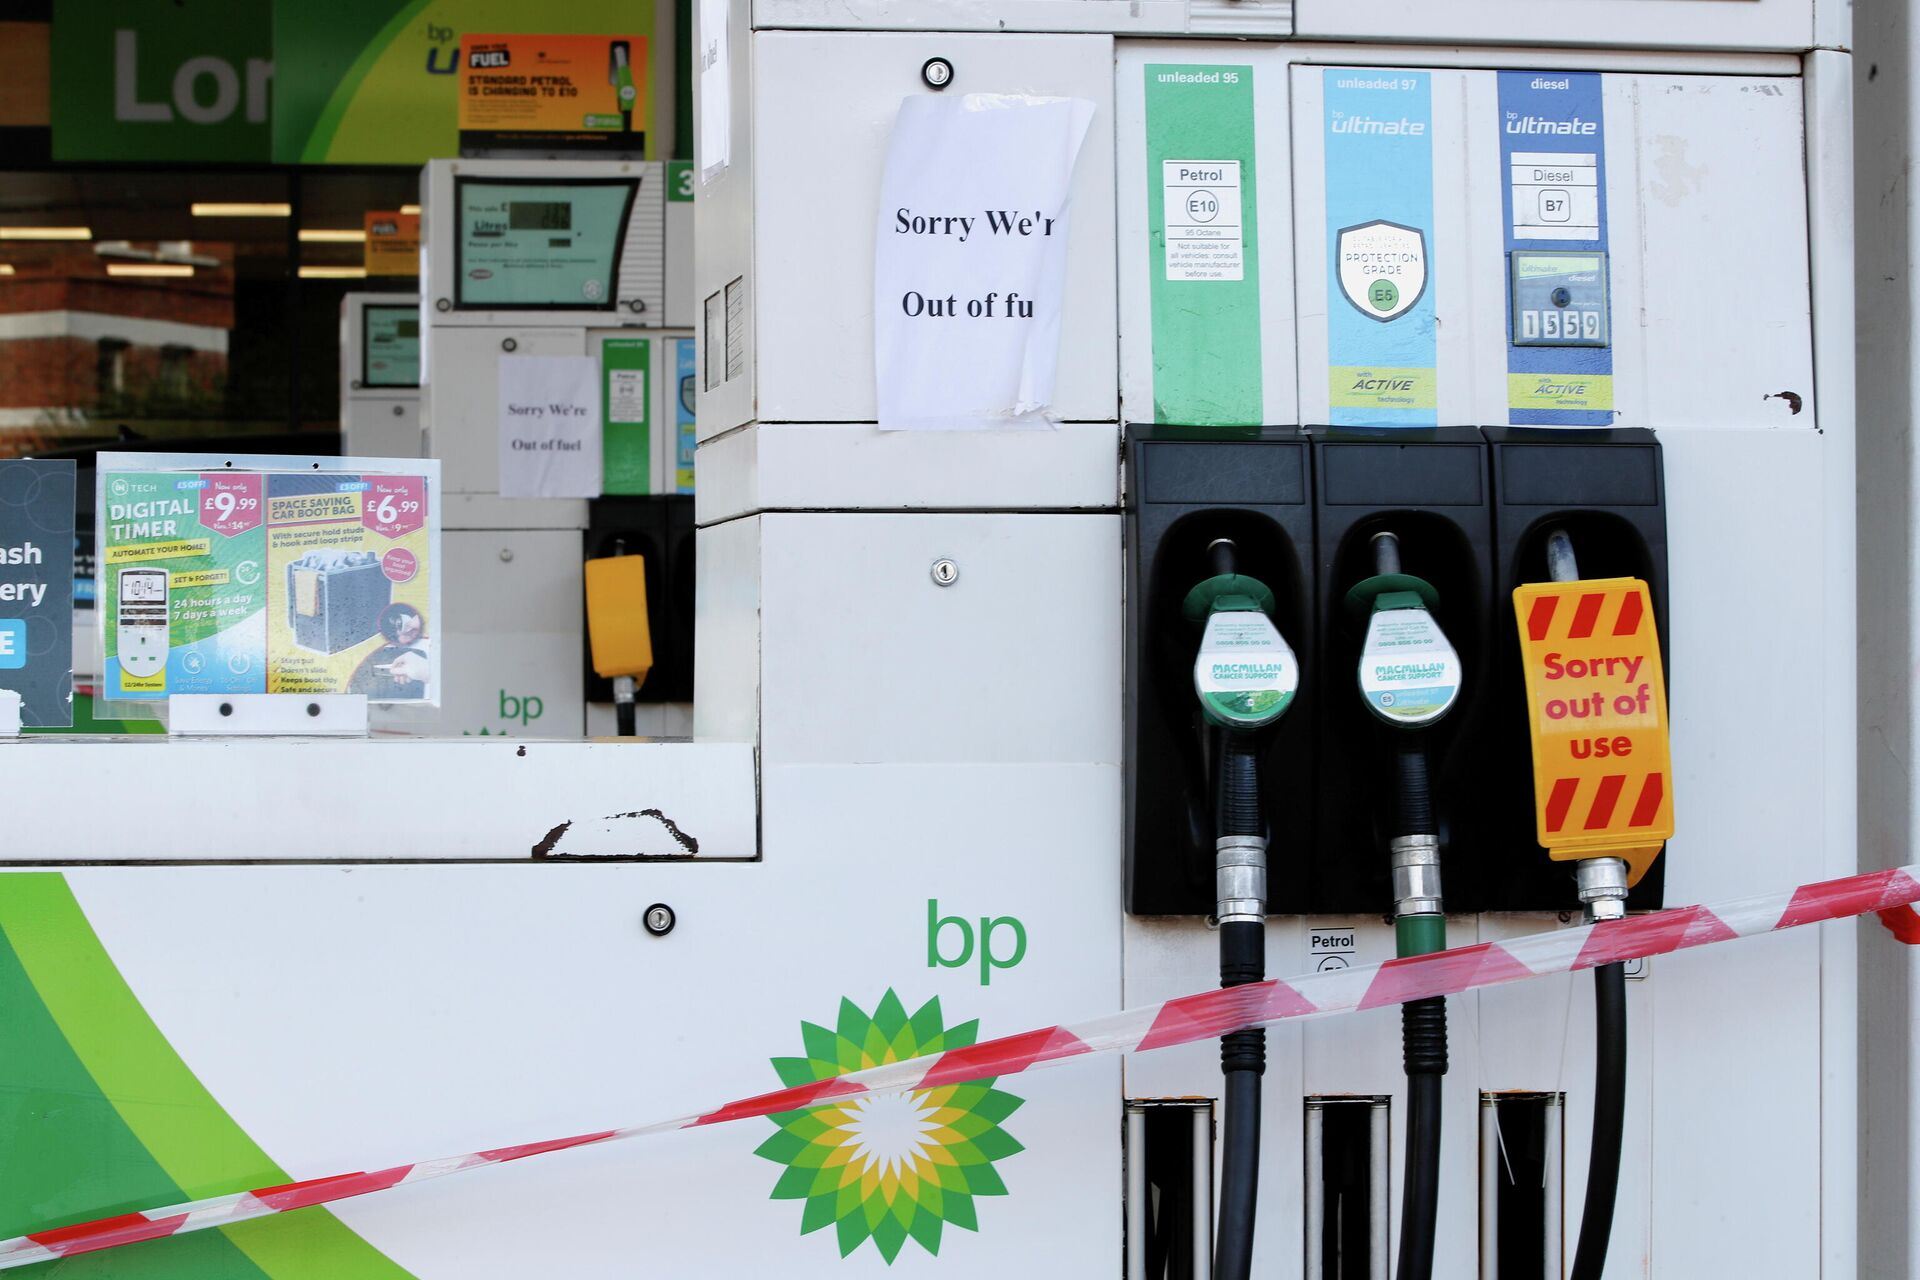 A BP petrol station that has ran out of fuel is seen in London, Britain, September 26, 2021 - Sputnik International, 1920, 27.09.2021